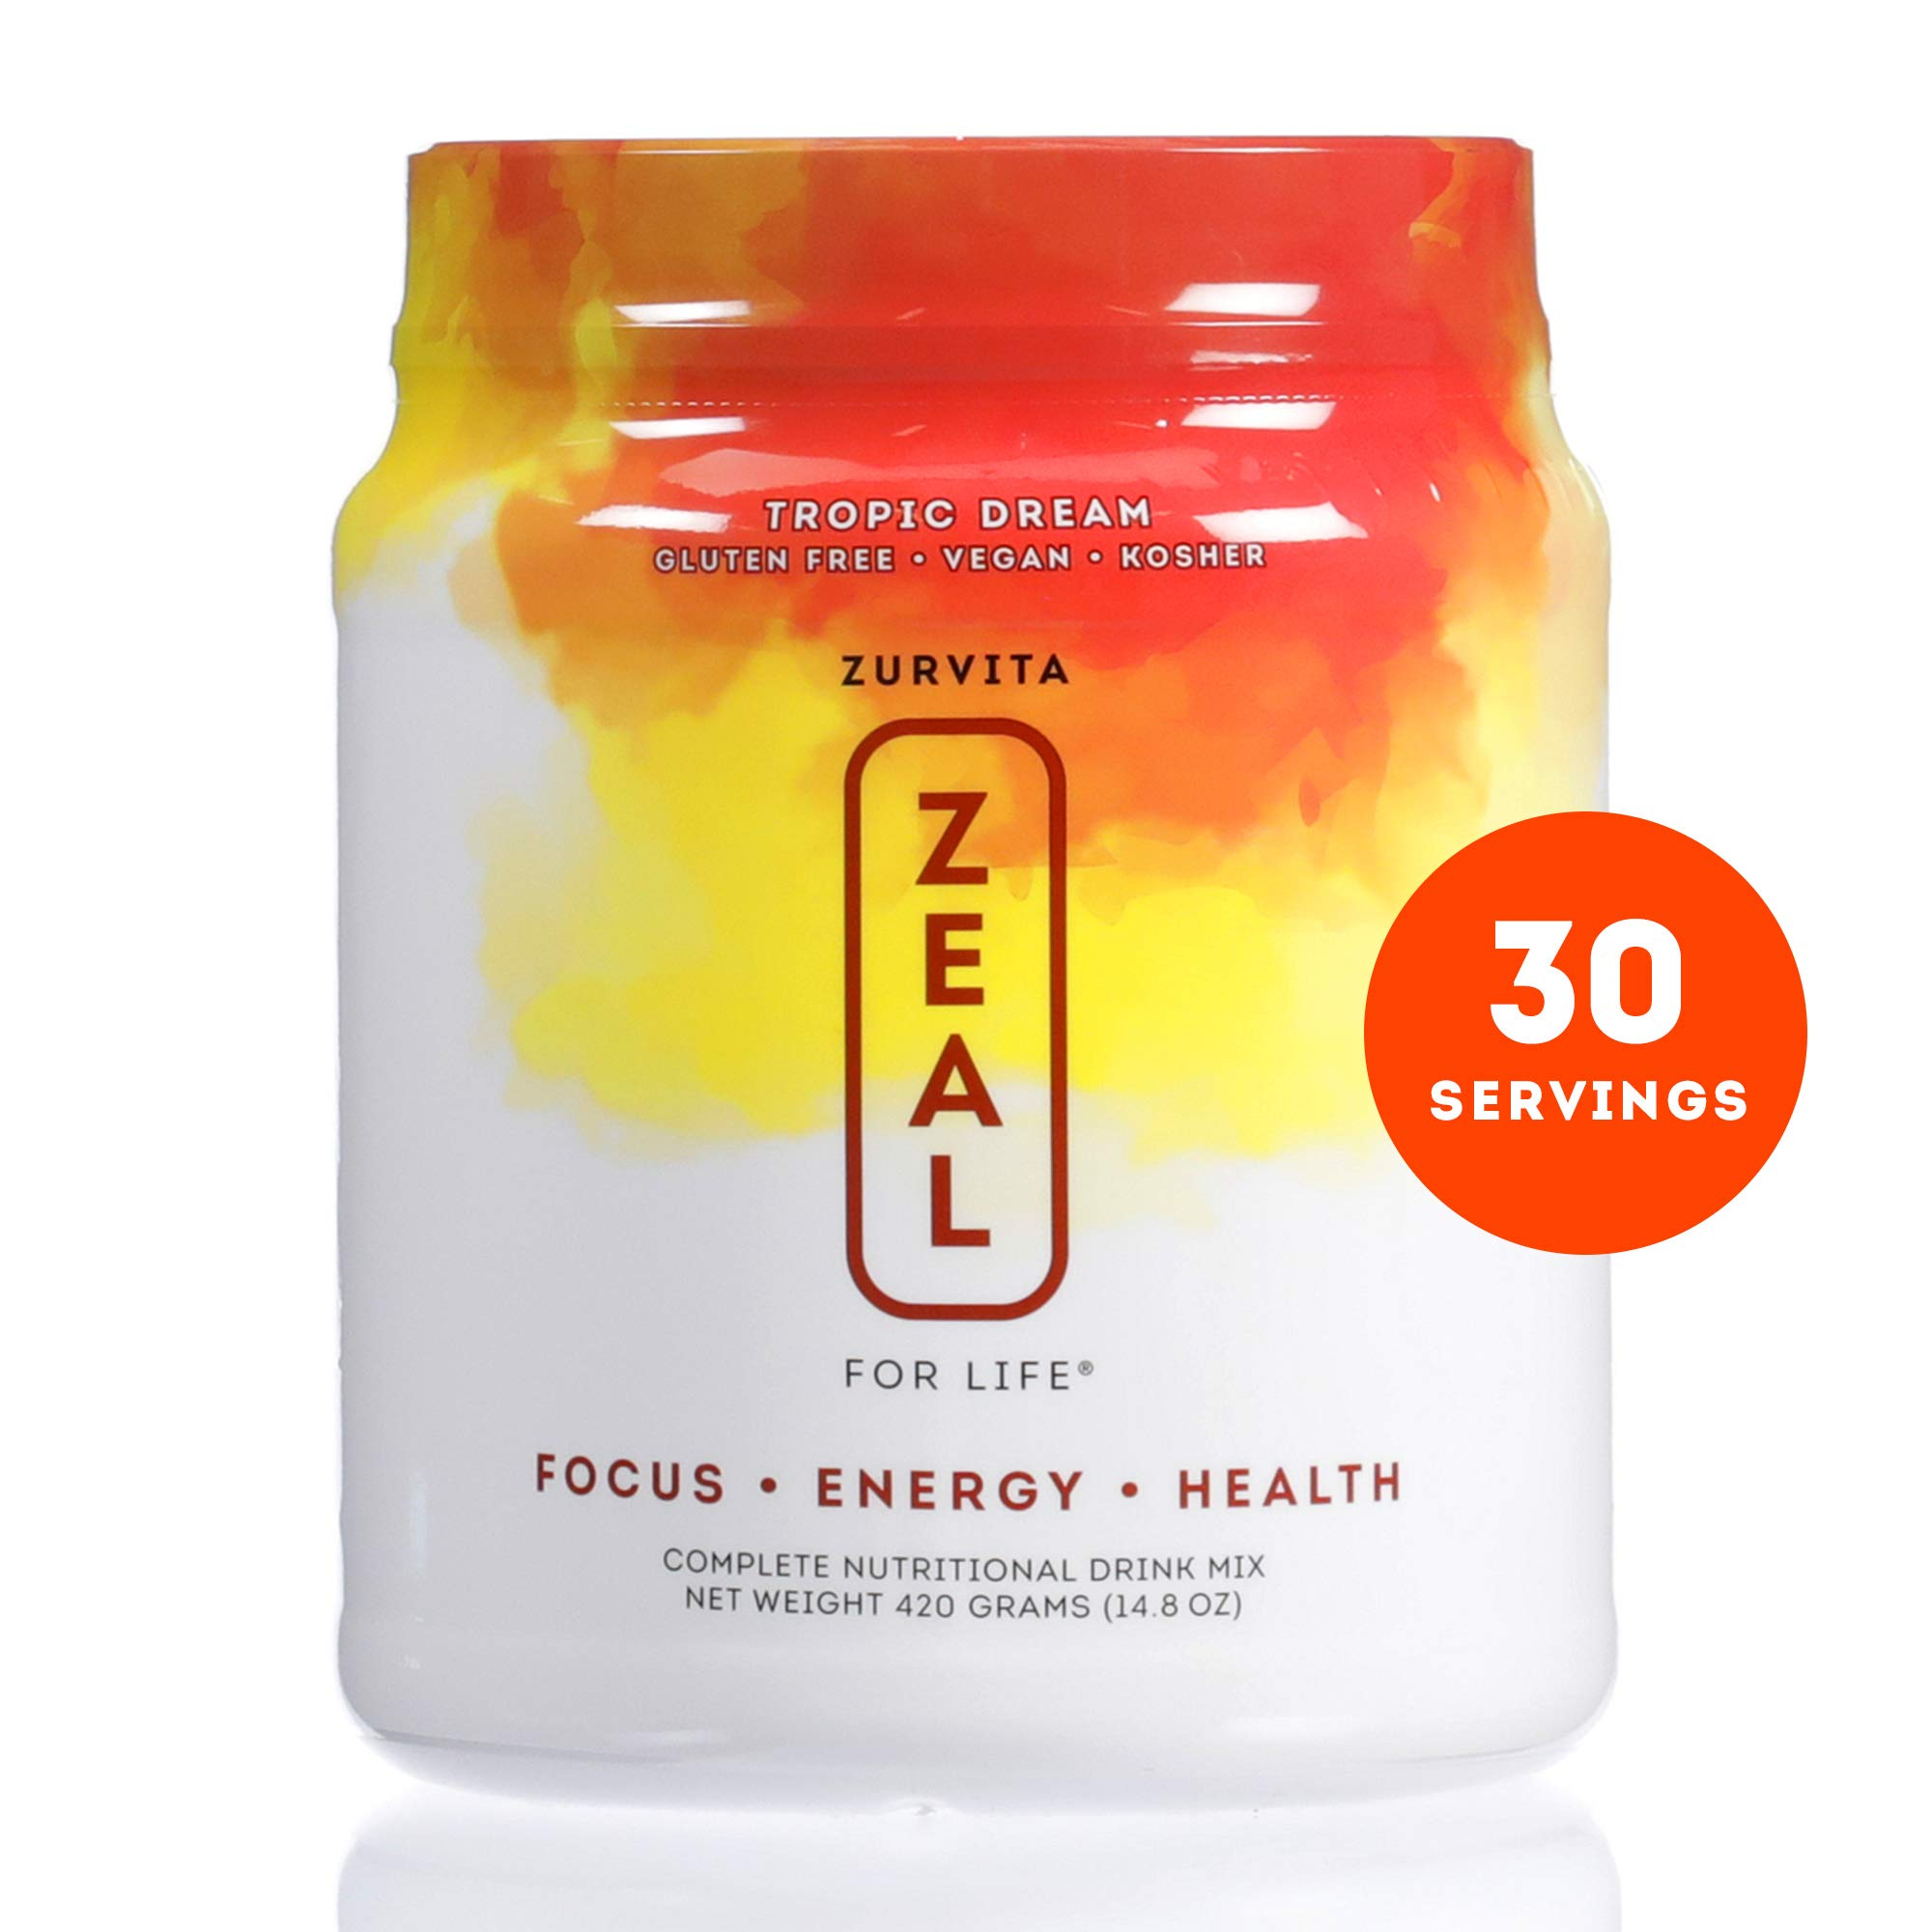 Zurvita Zeal for Life 30 Day Wellness Canister, Tropic Dream, 420 Grams | Nutritious Drink with Vitamin A, C, D, E, B6, and B12 by Zurvita